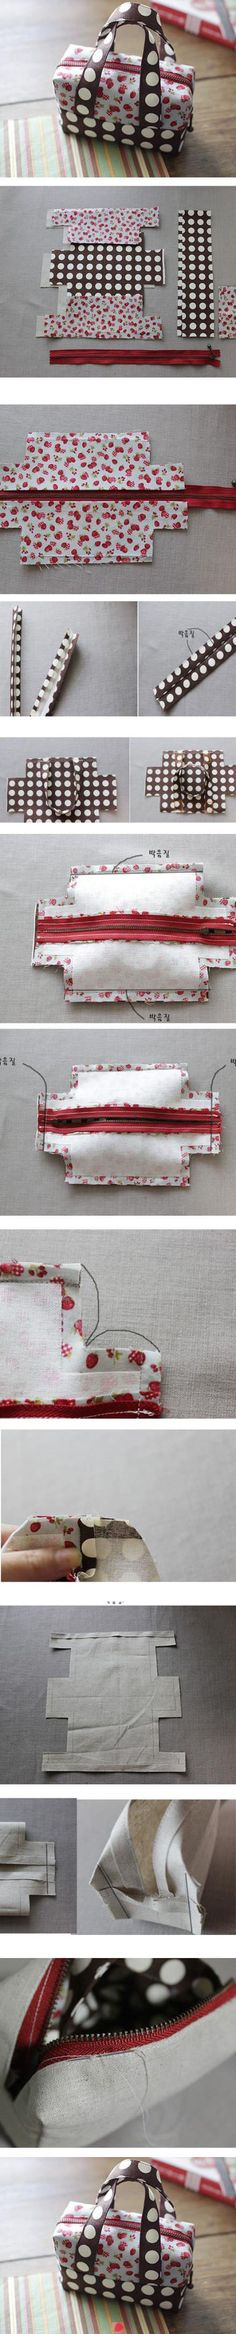 Cute bag!!! I would really be able to do this, but the sewing is not my best quality!